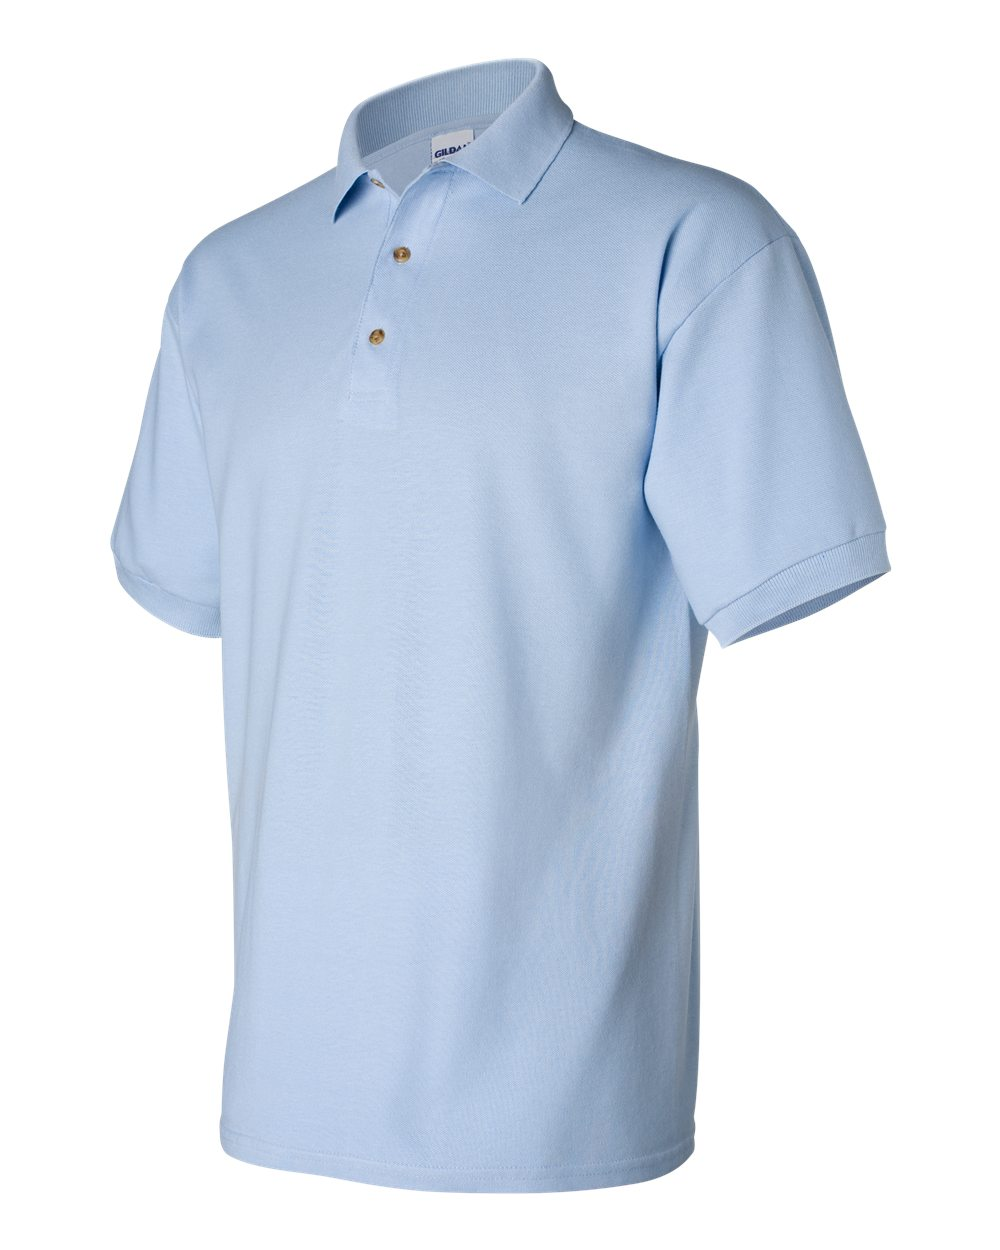 Gildan Mens Ultra Cotton 65 Oz Pique Polo G380 S 5xl Ebay